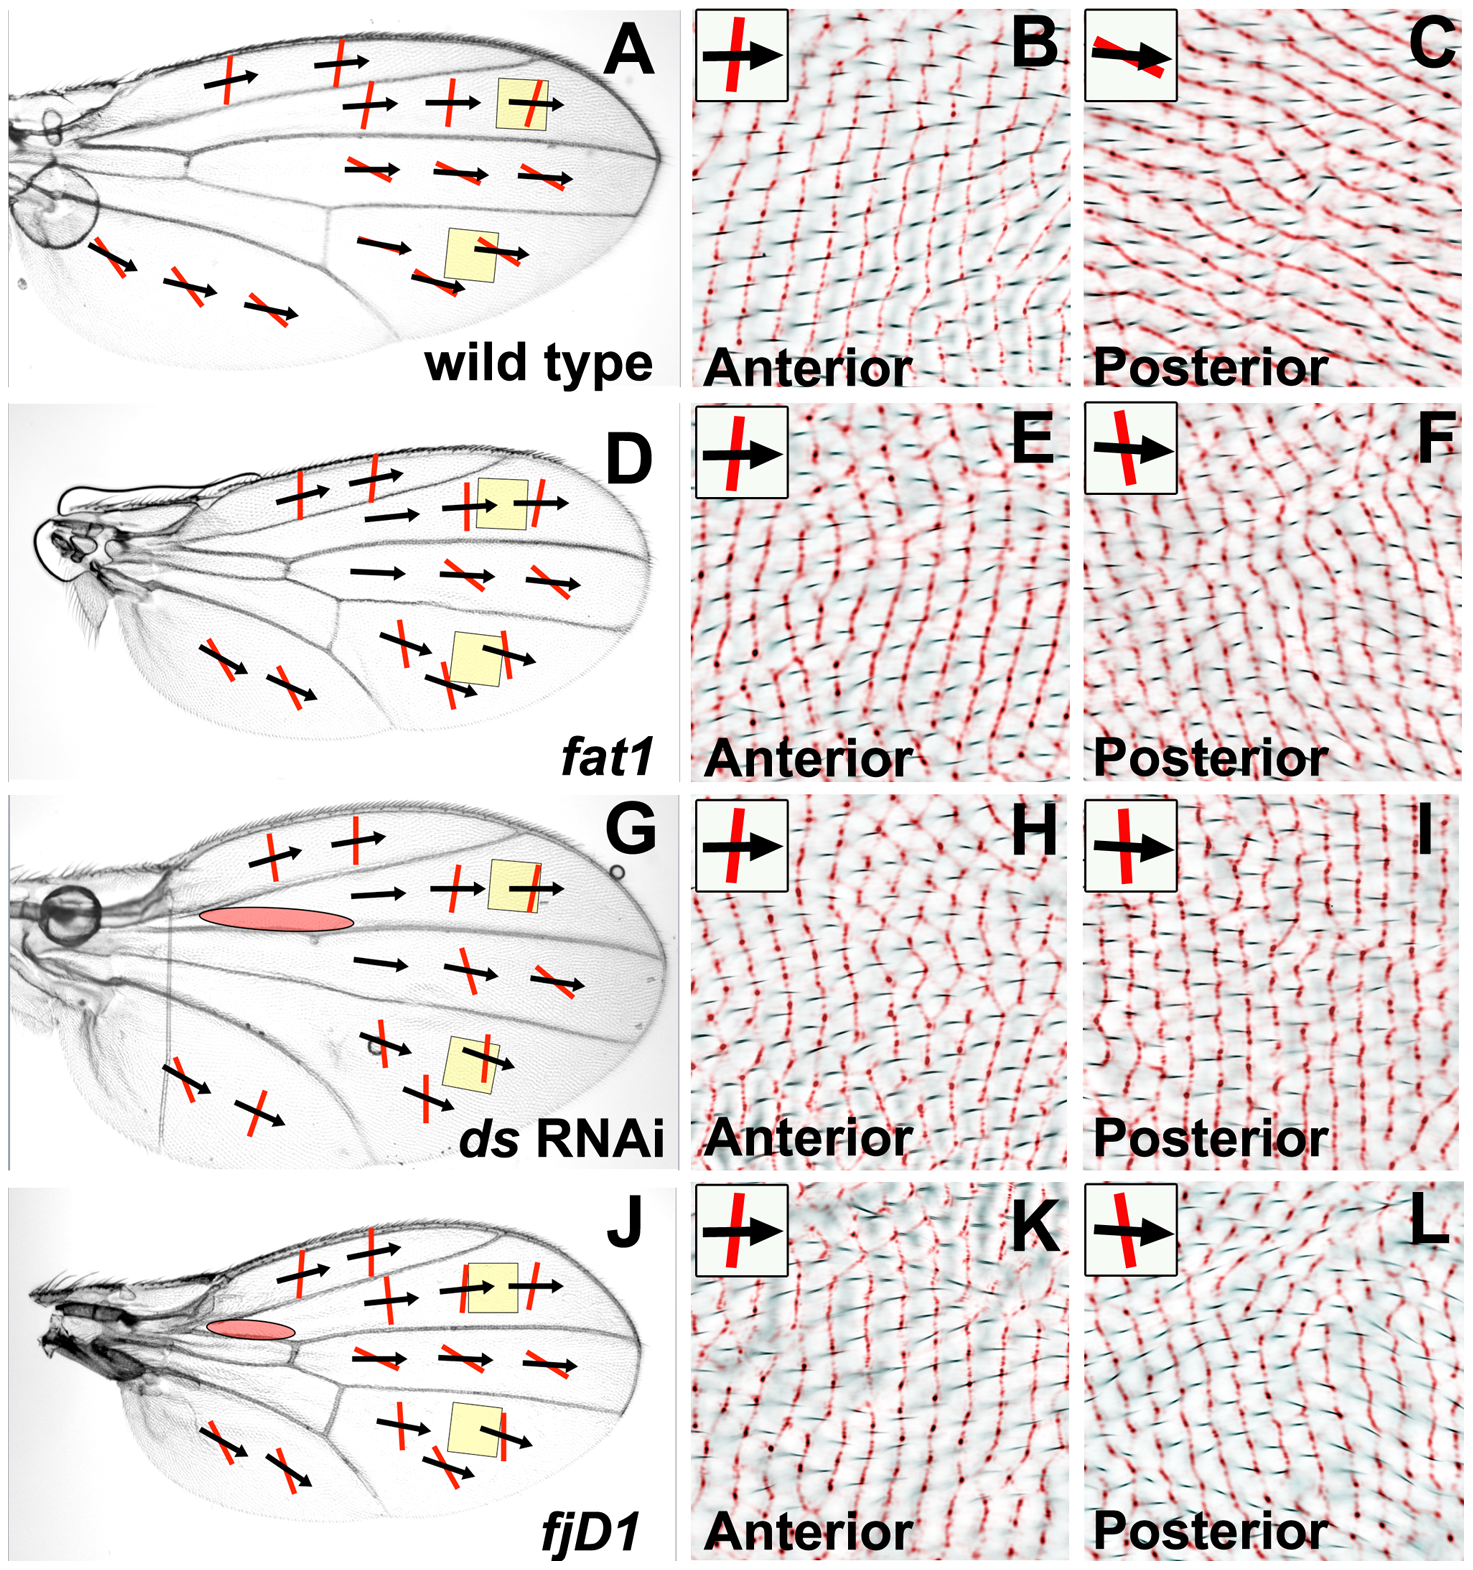 Reduced Ft/Ds pathway gene activity alters posterior ridge orientation without affecting hair polarity.